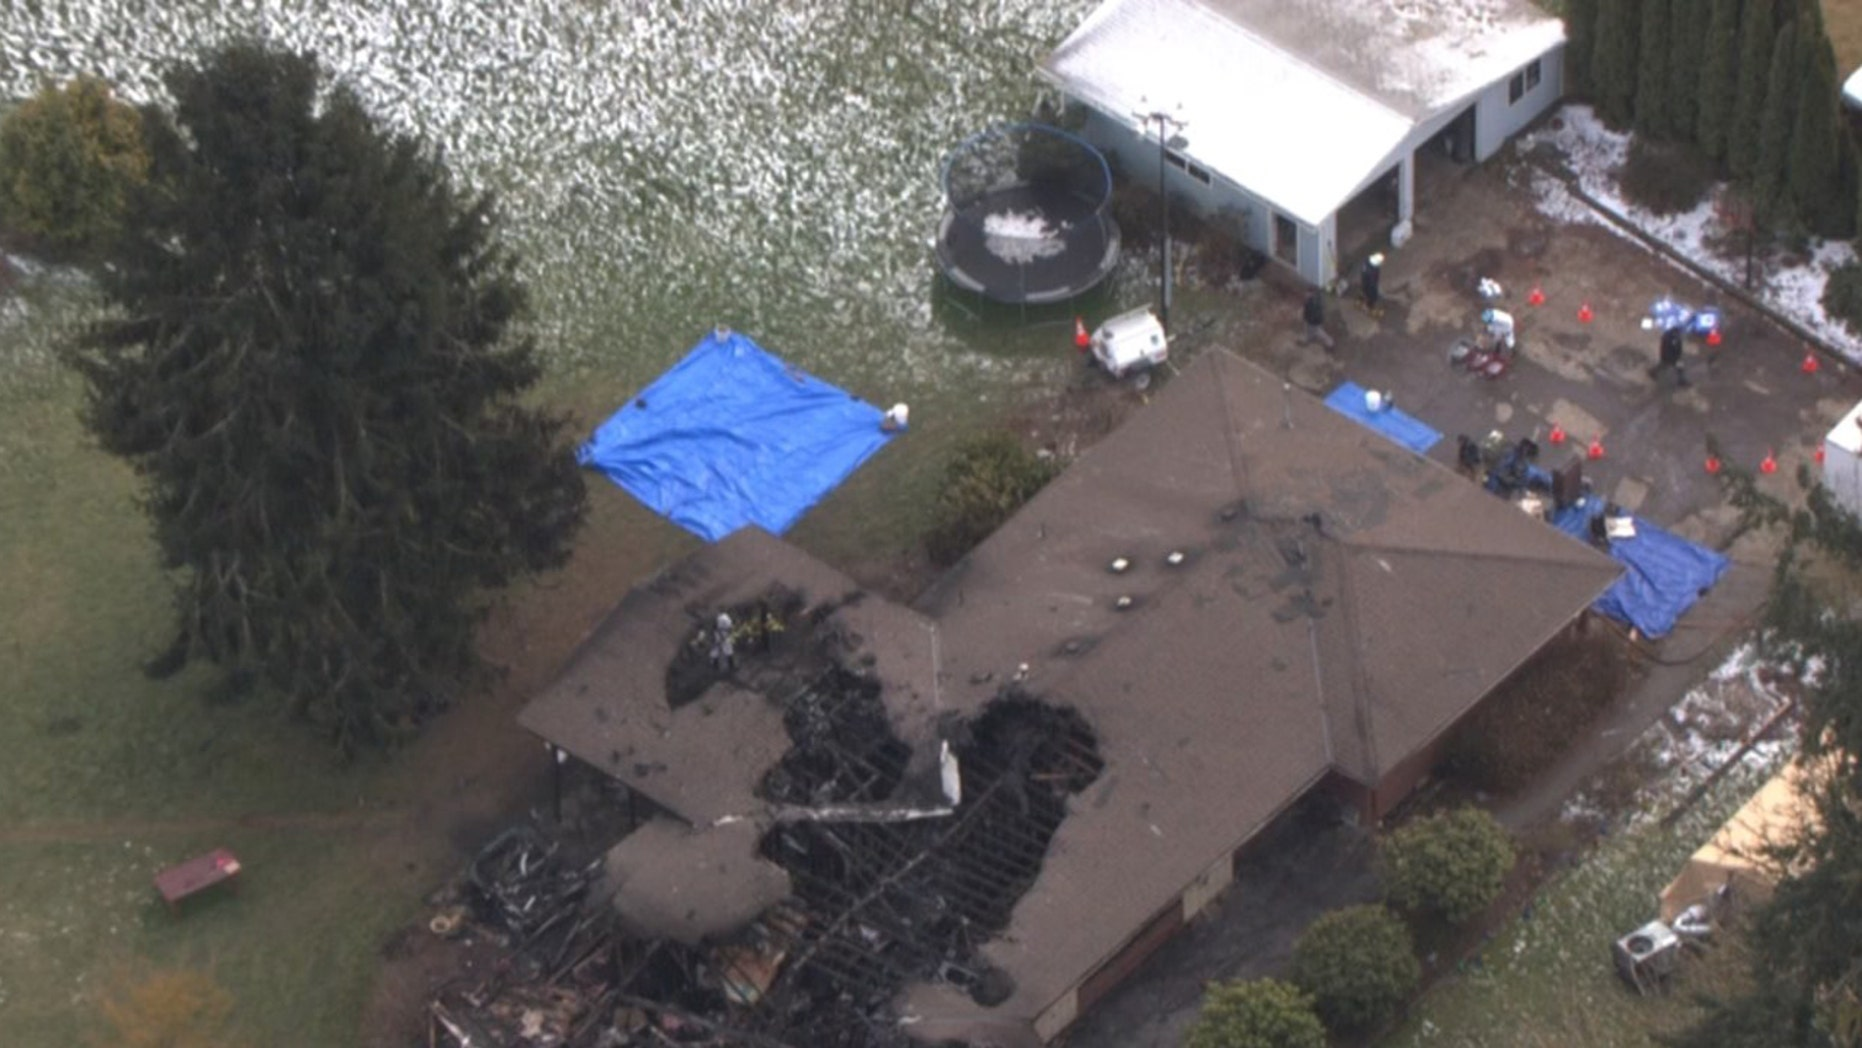 The burned home of the Kroeker family in Hubbard, Oregon.